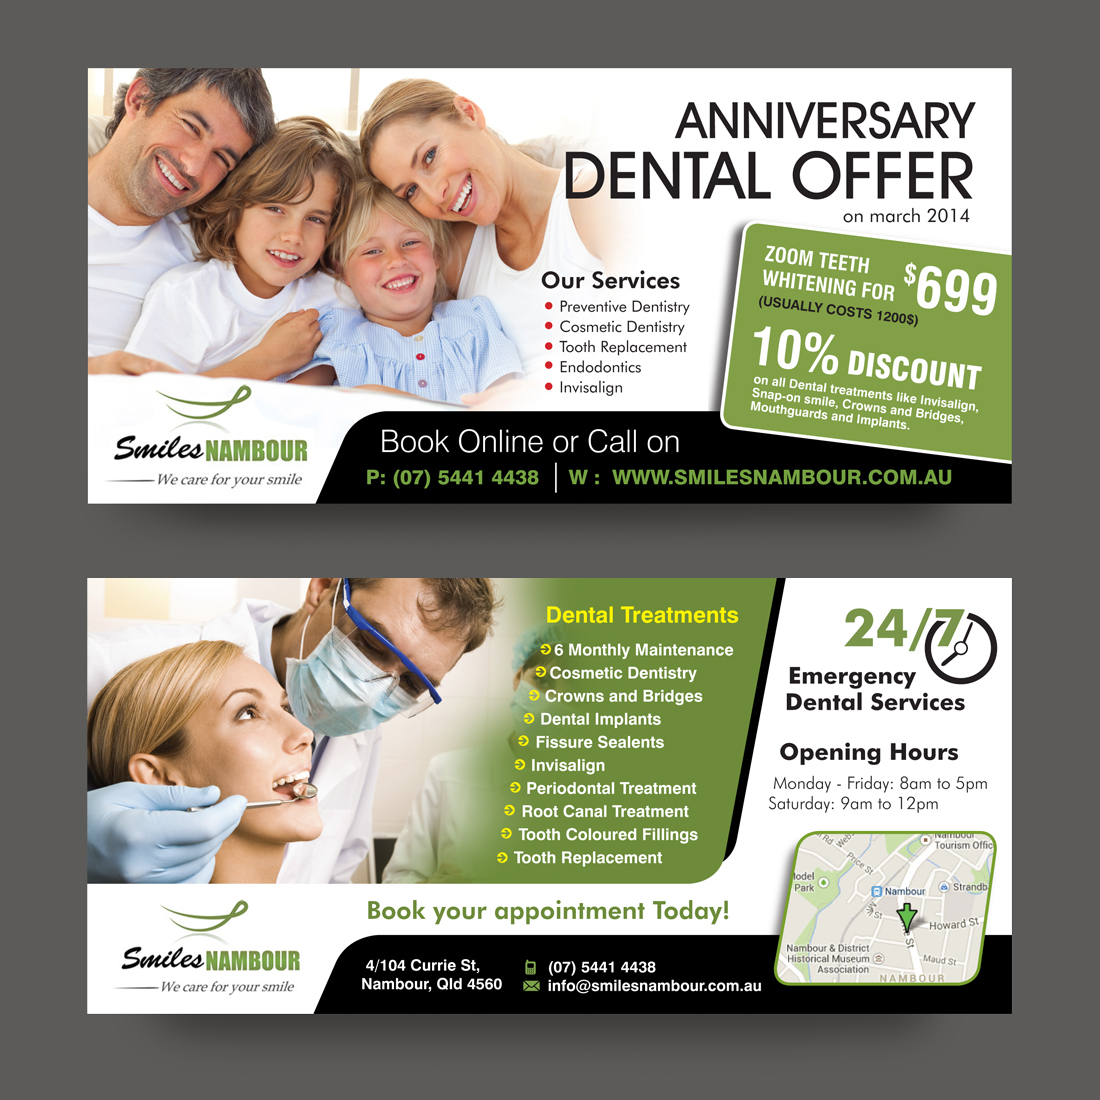 Dental Clinic Flyer Design Galleries for Inspiration